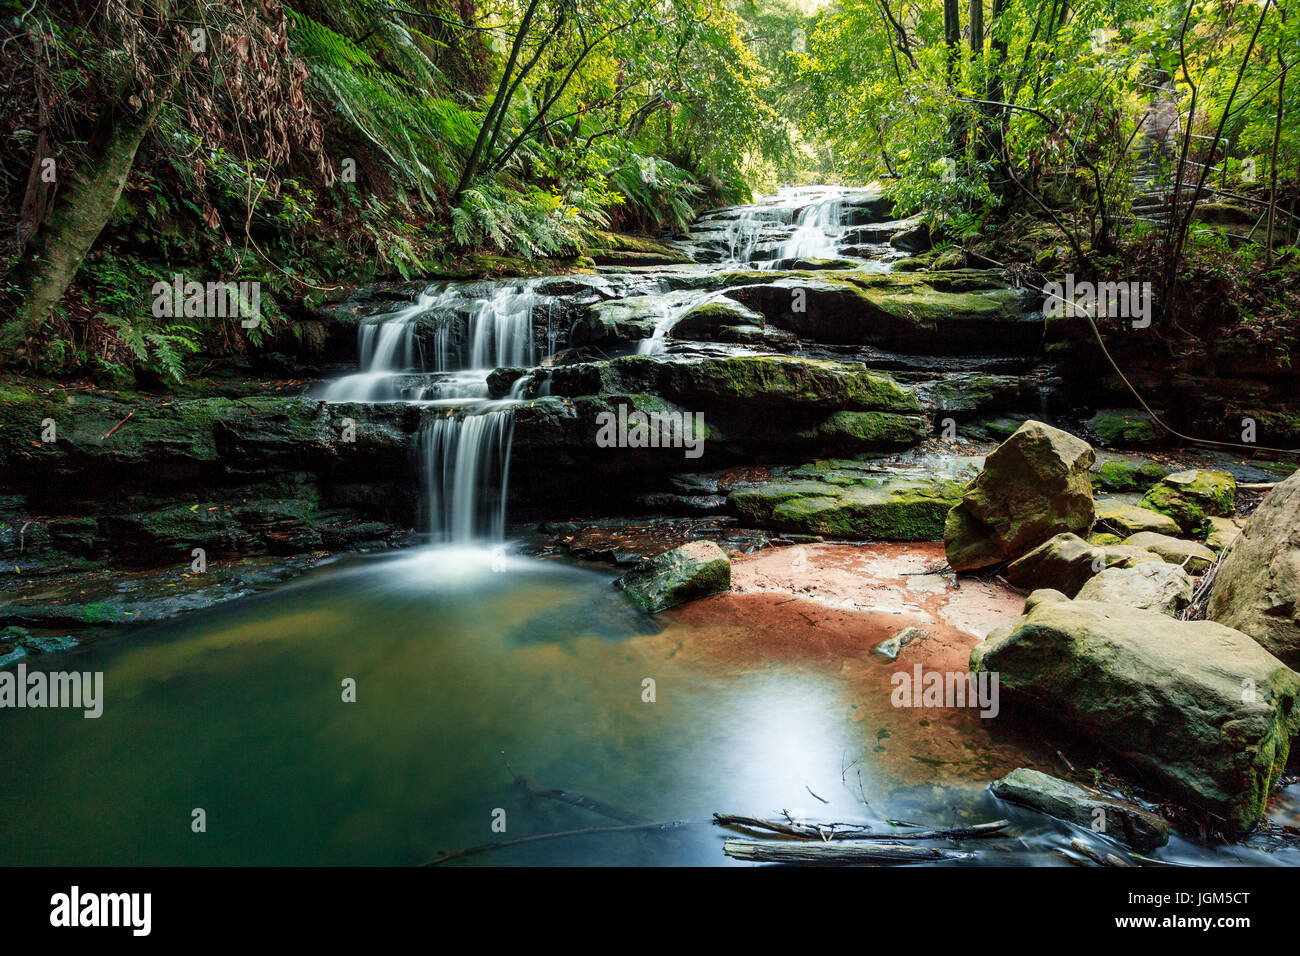 The Leura Cascades in Sydney's Blue Mountains - a great escape from the city with some great bushwalks. - Stock Image